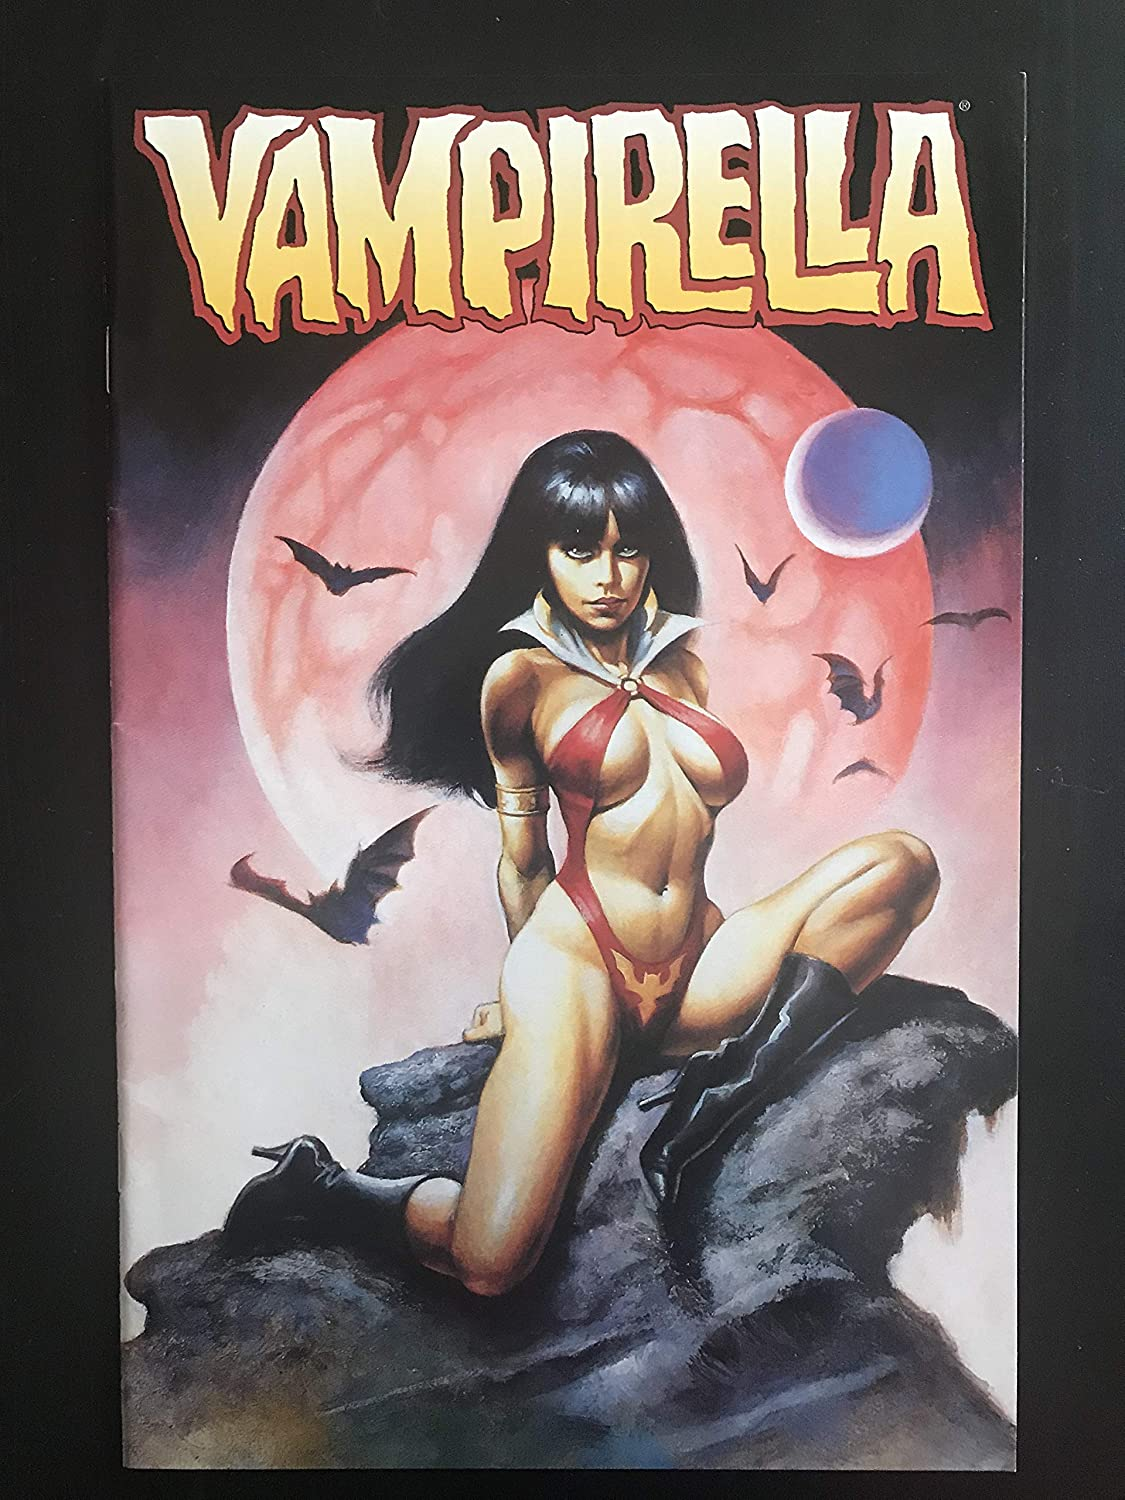 We OFFer at cheap prices Vampirella #10 2001 2002 Harris specialty shop Variant - Comic PL $44.95 Book